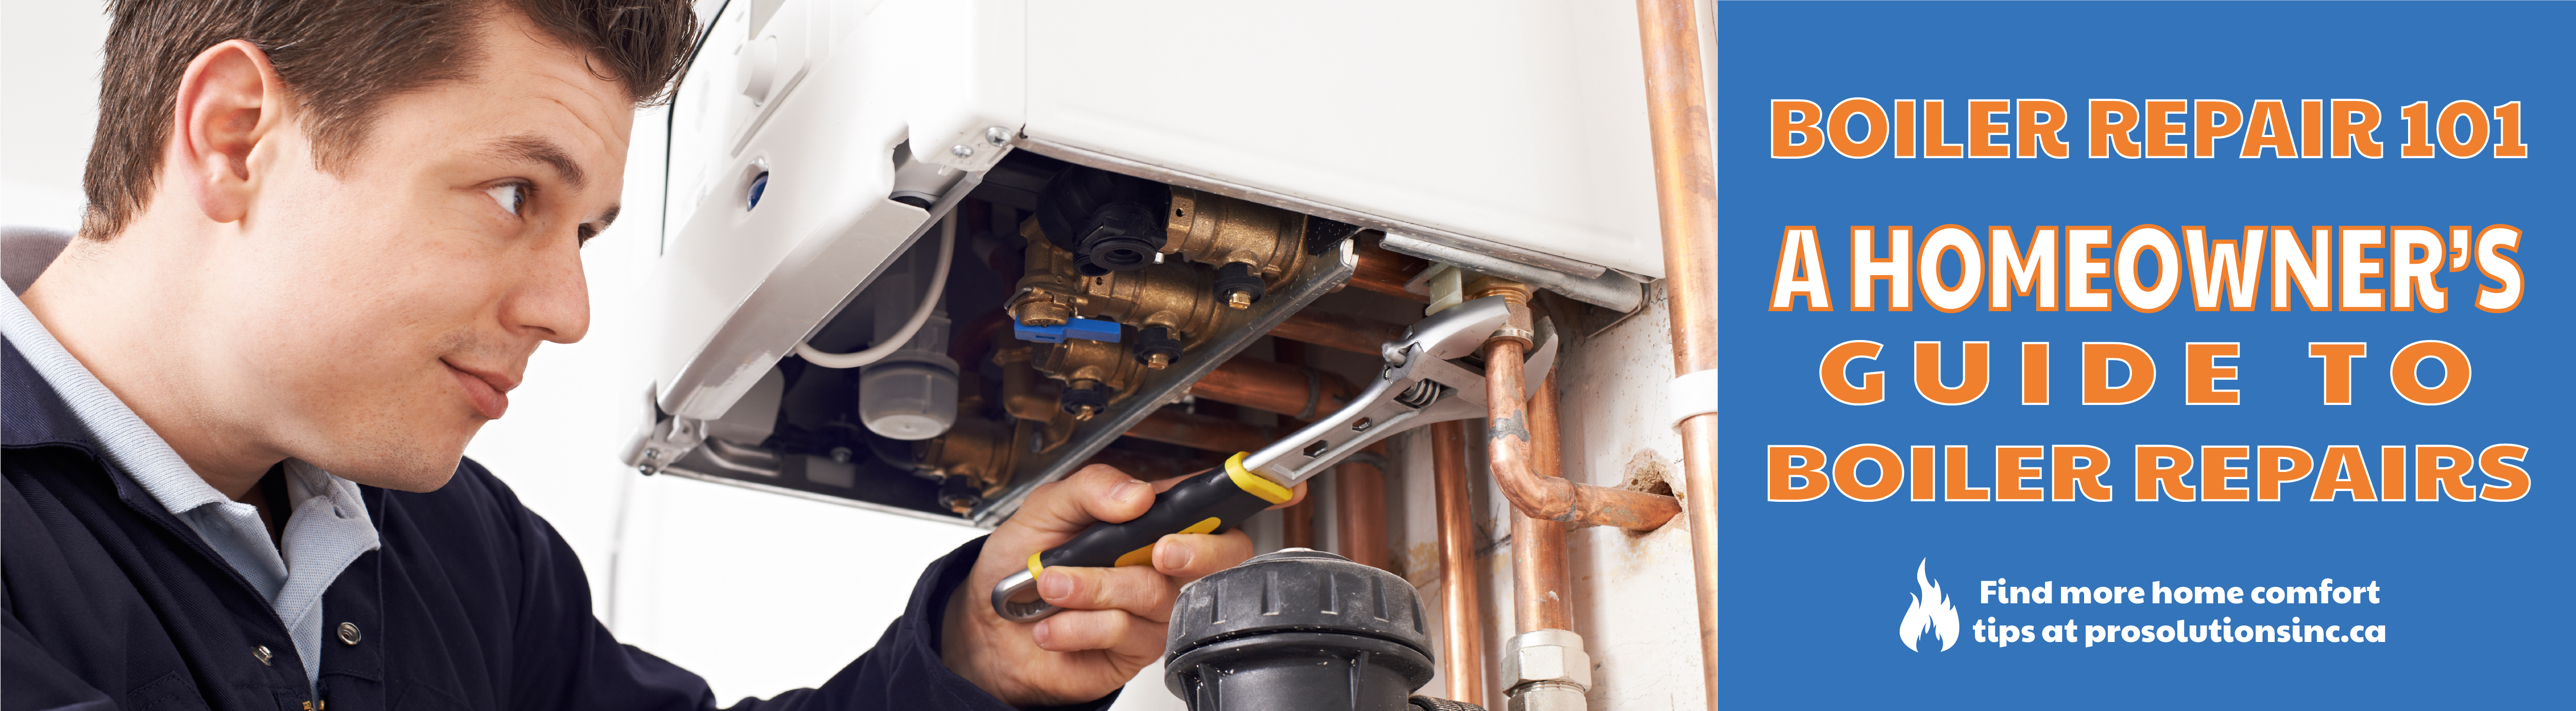 Boiler repair at home